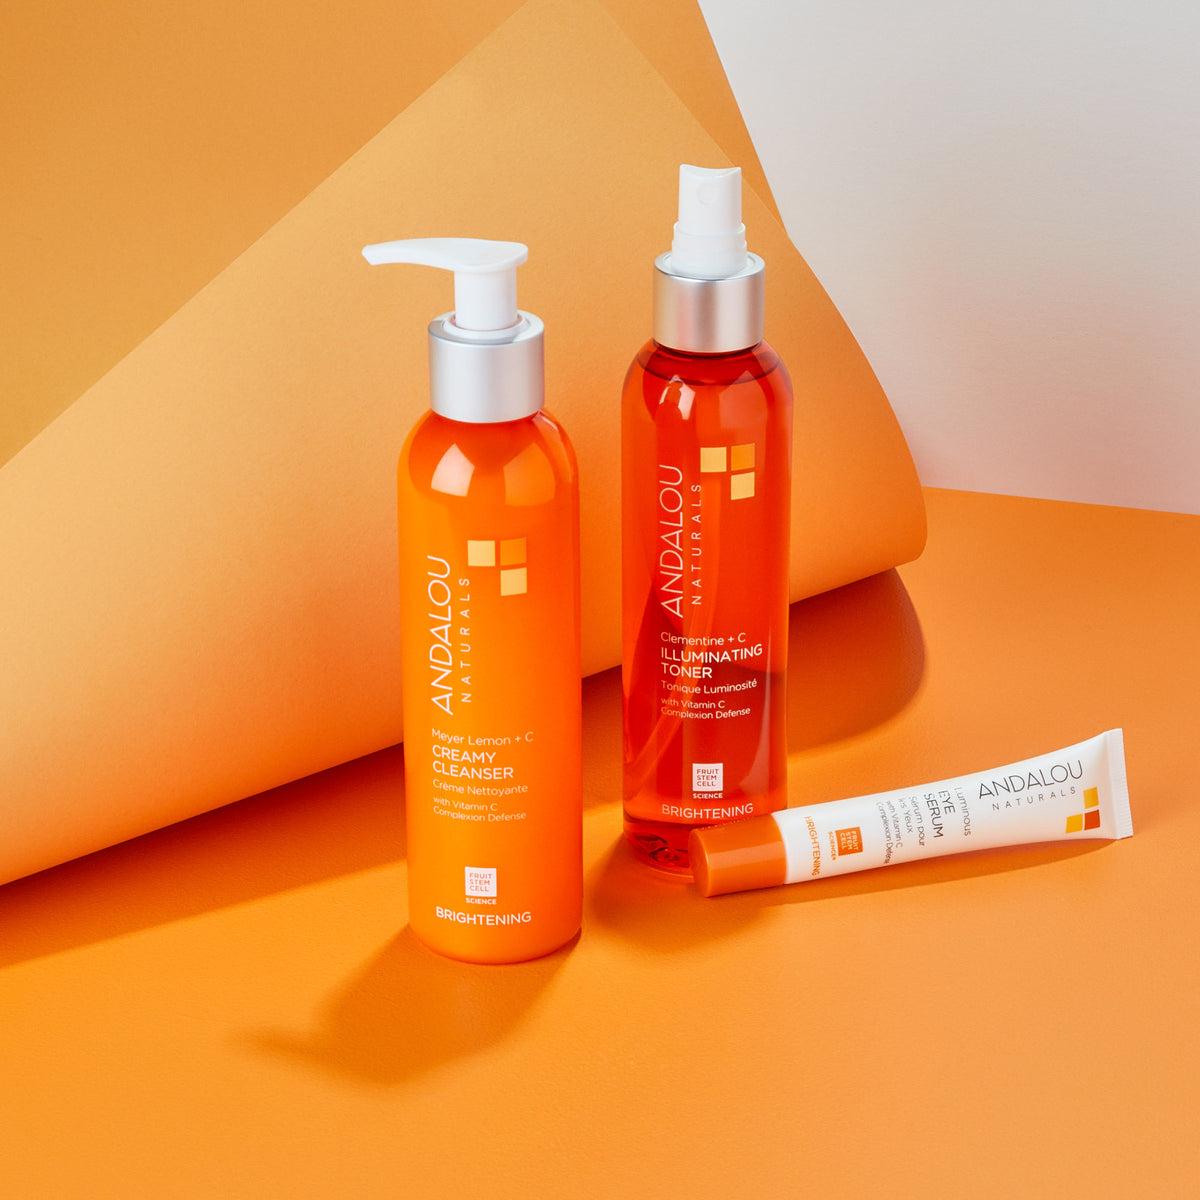 Brightening Clementine + C Illuminating Toner